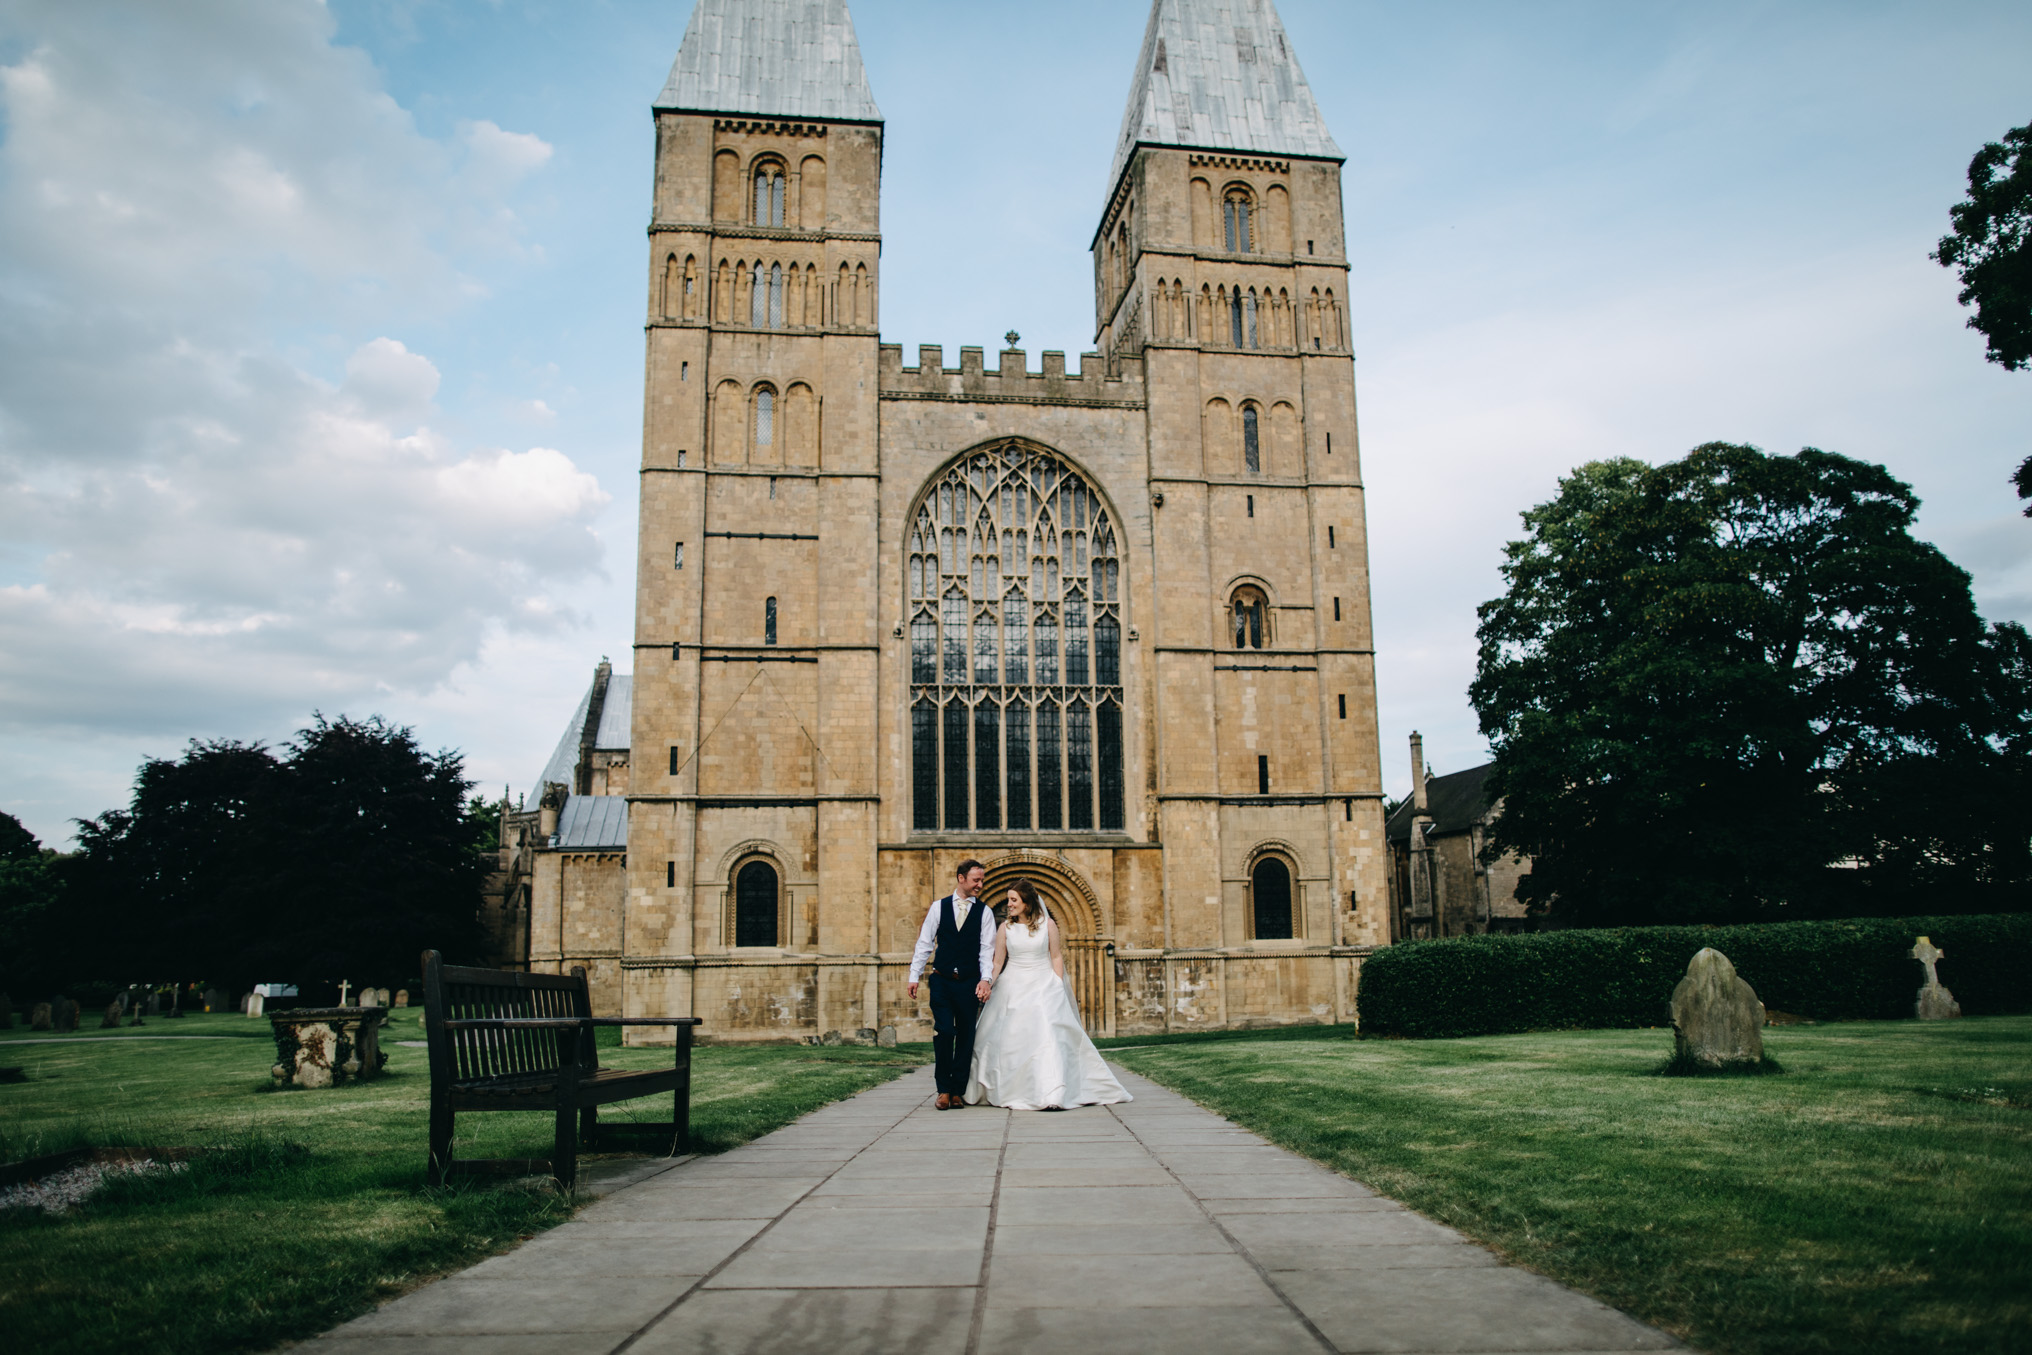 southwell-minster-wedding-122